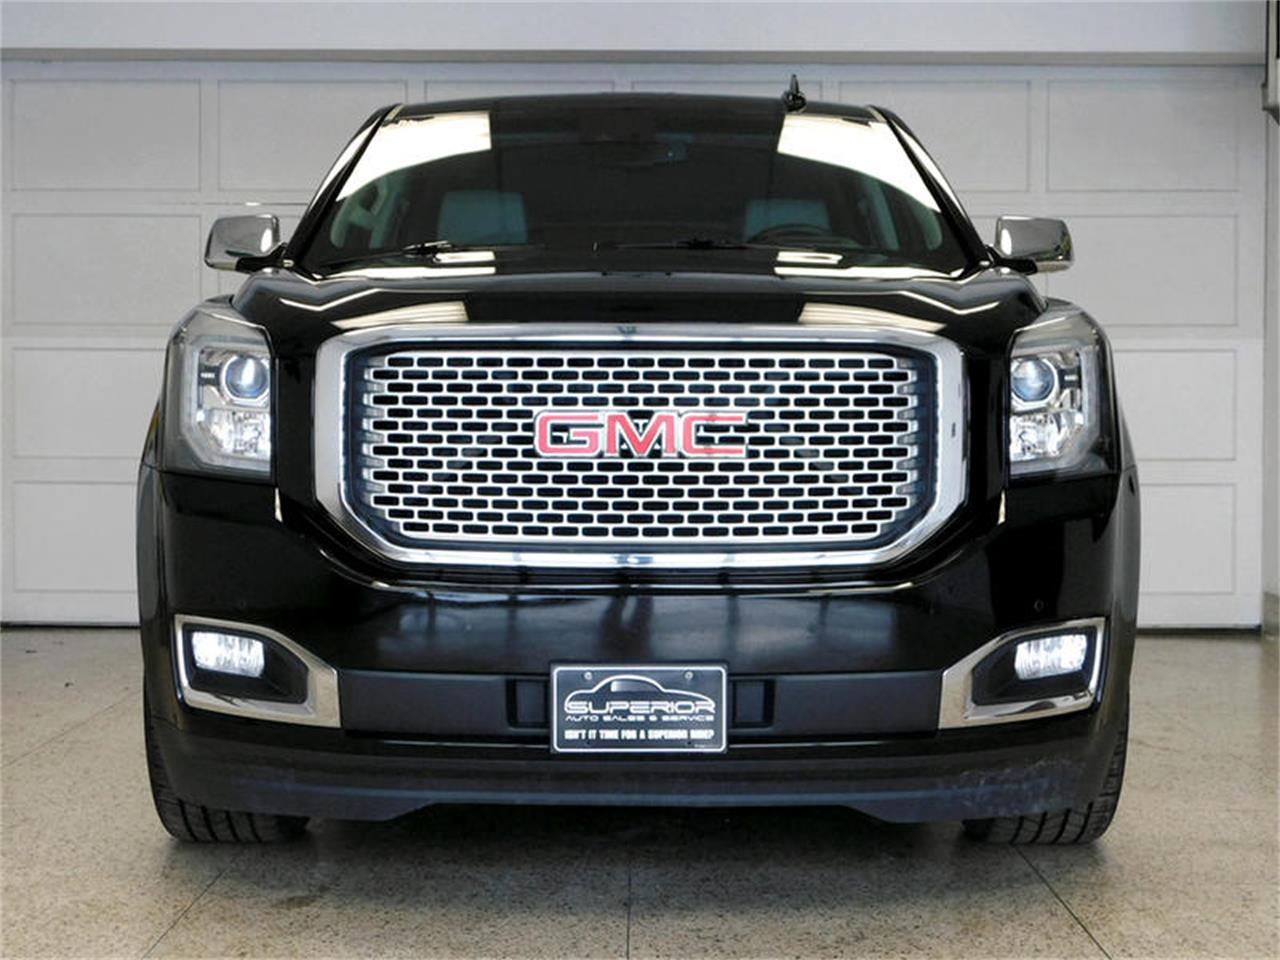 Large Picture of '15 GMC Yukon Denali located in New York - $39,500.00 Offered by Superior Auto Sales - P3JC